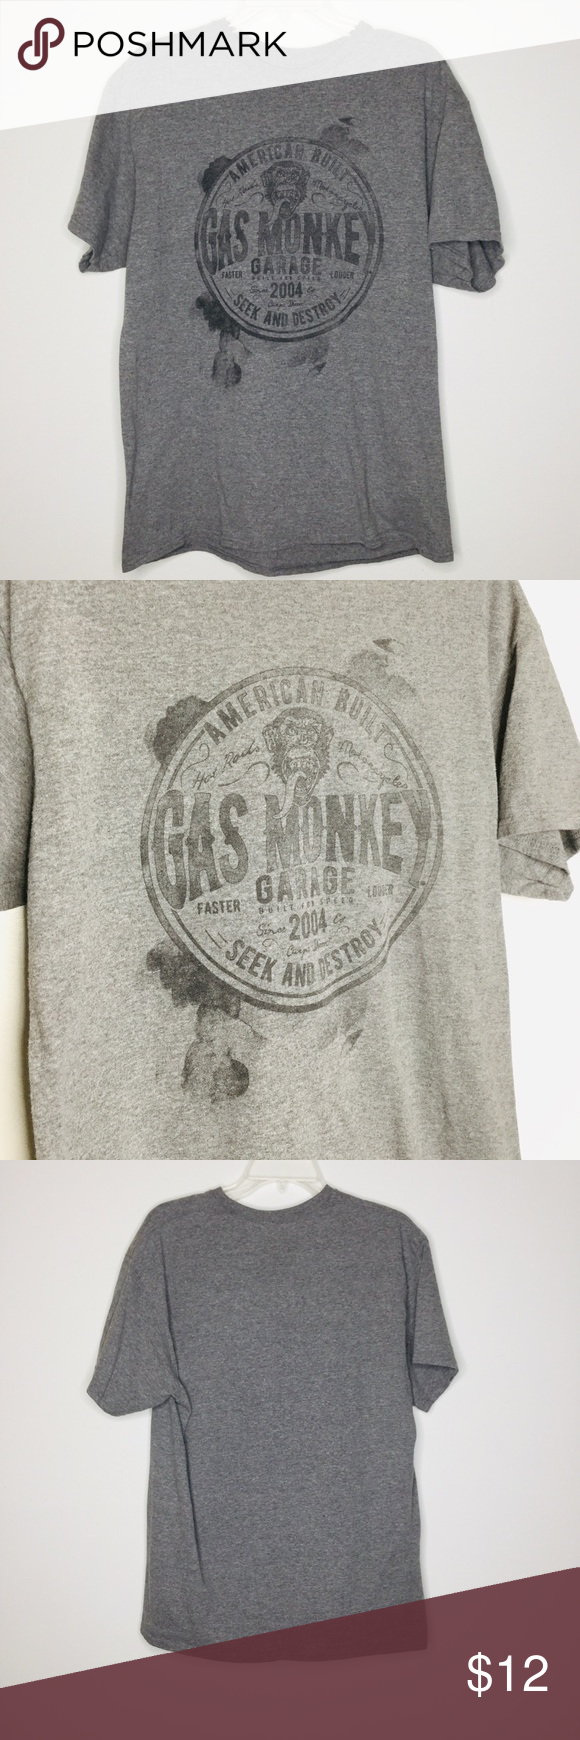 "Gas Monkey Garage Tee * Size L * Pit to pit 20"" * Length 28"" * Front Graphics * Gray ** Preowned  / Great Condition   ♻️ - U Gas Monkey Garage Shirts Tees - Short Sleeve #gasmonkeygarage Gas Monkey Garage Tee * Size L * Pit to pit 20"" * Length 28"" * Front Graphics * Gray ** Preowned  / Great Condition   ♻️ - U Gas Monkey Garage Shirts Tees - Short Sleeve #gasmonkeygarage"